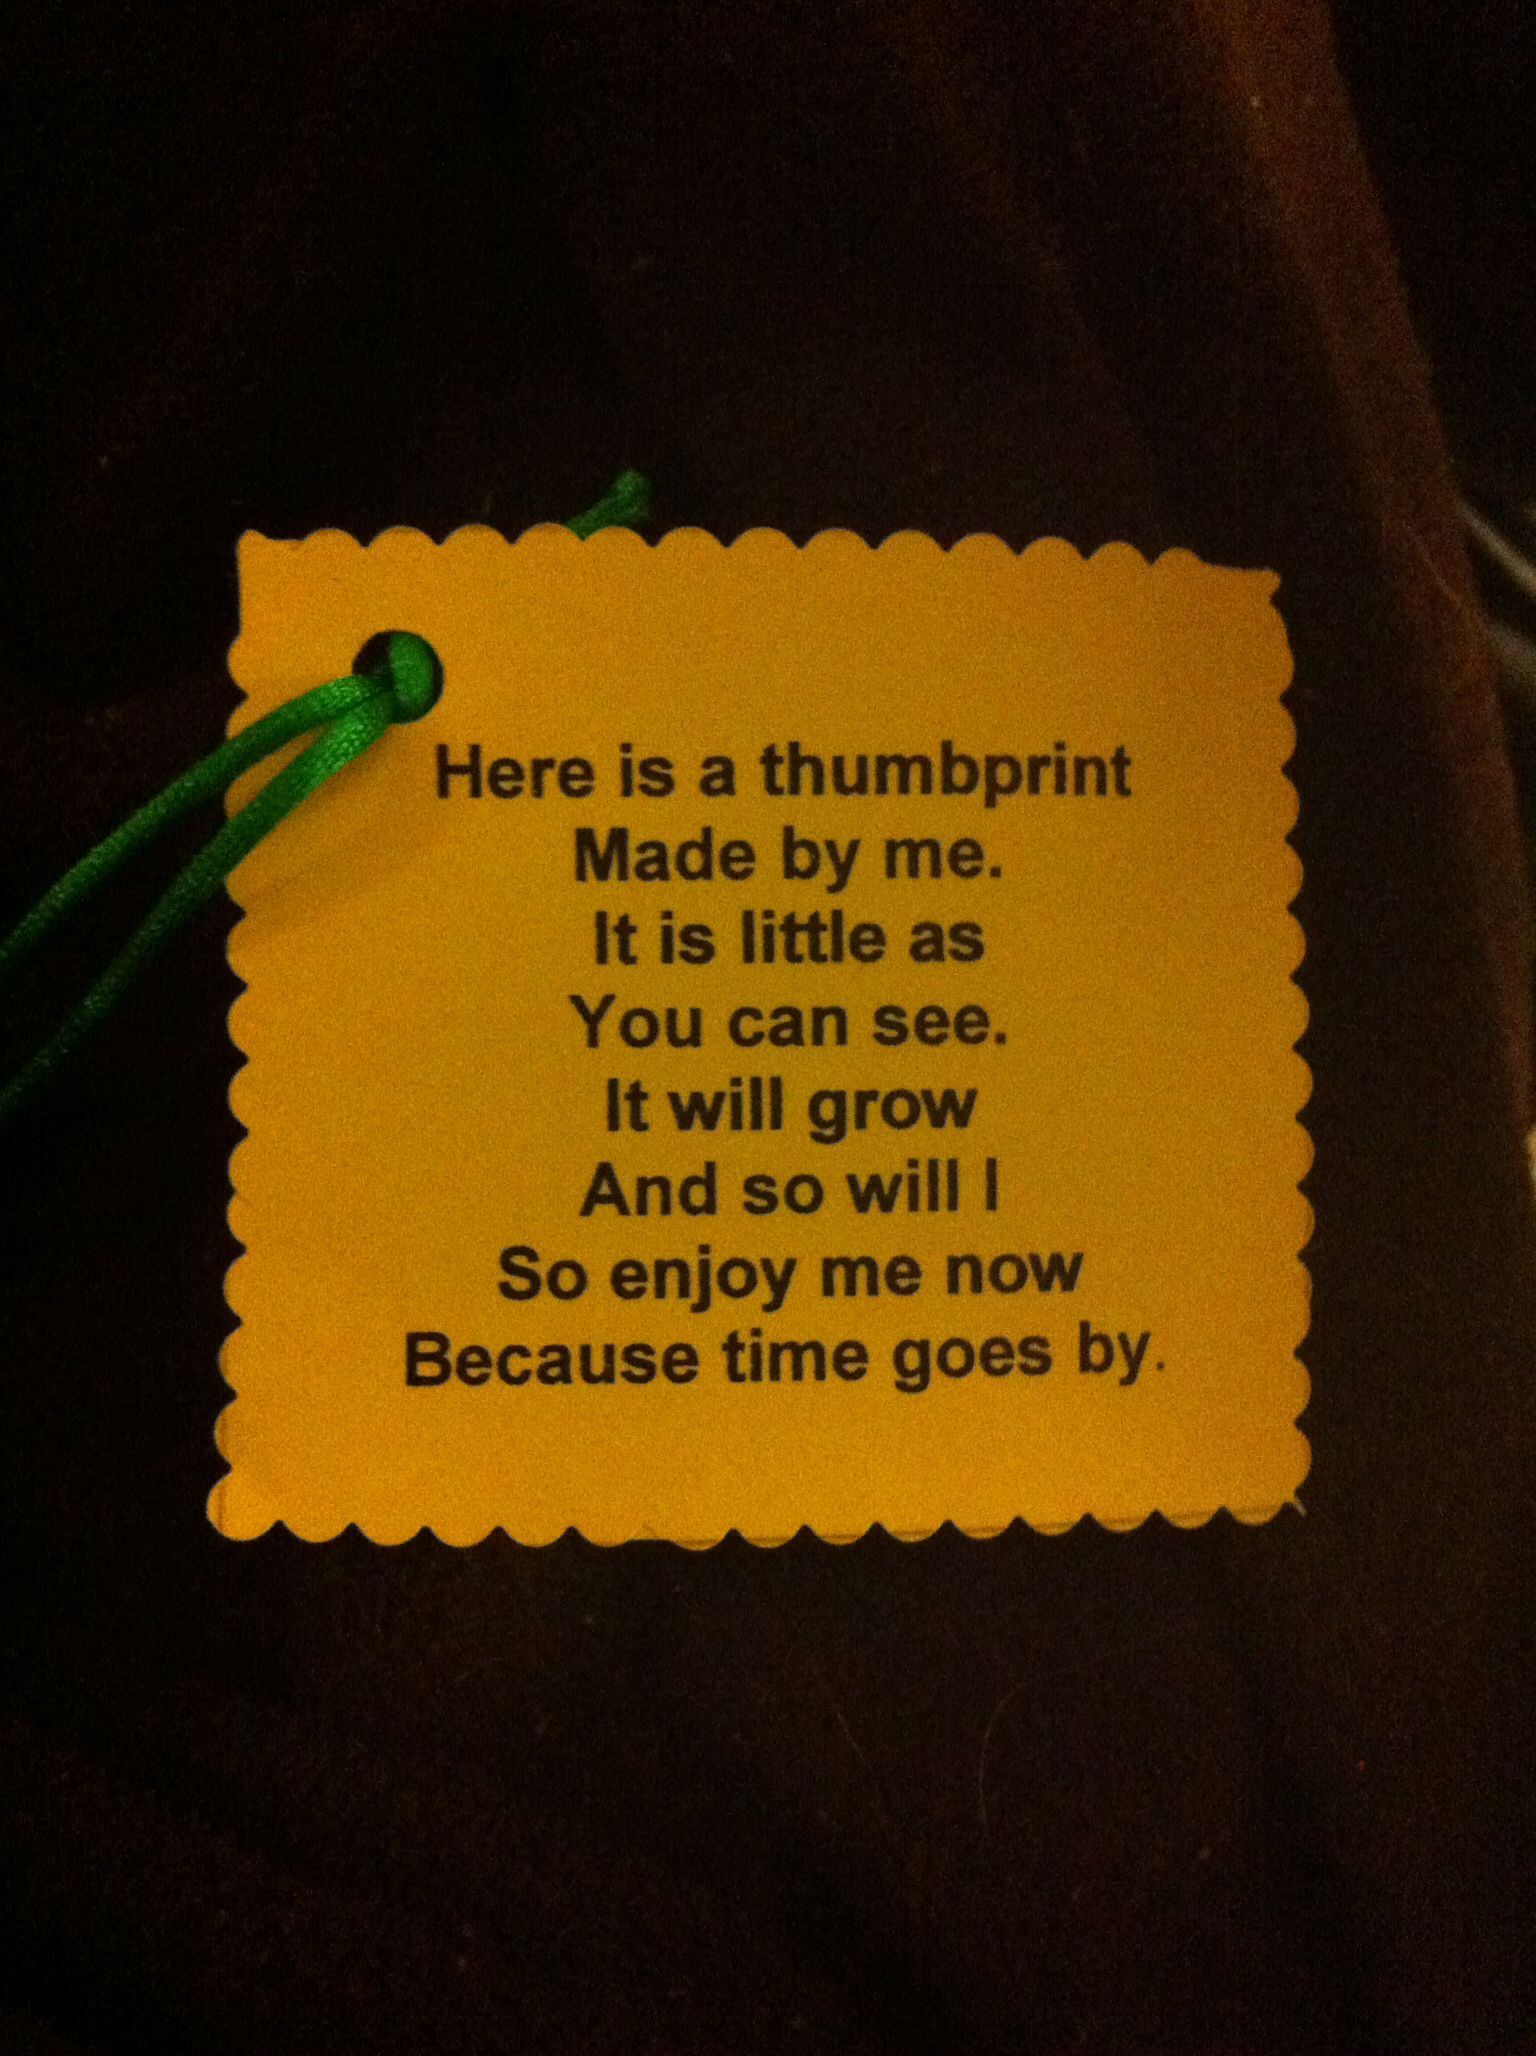 Great Christmas Gifts For Parents Part - 34: Great Poem Attached To A Bell With Childu0027s Thumbprint On It.wonderful Christmas  Gift For Parents:)